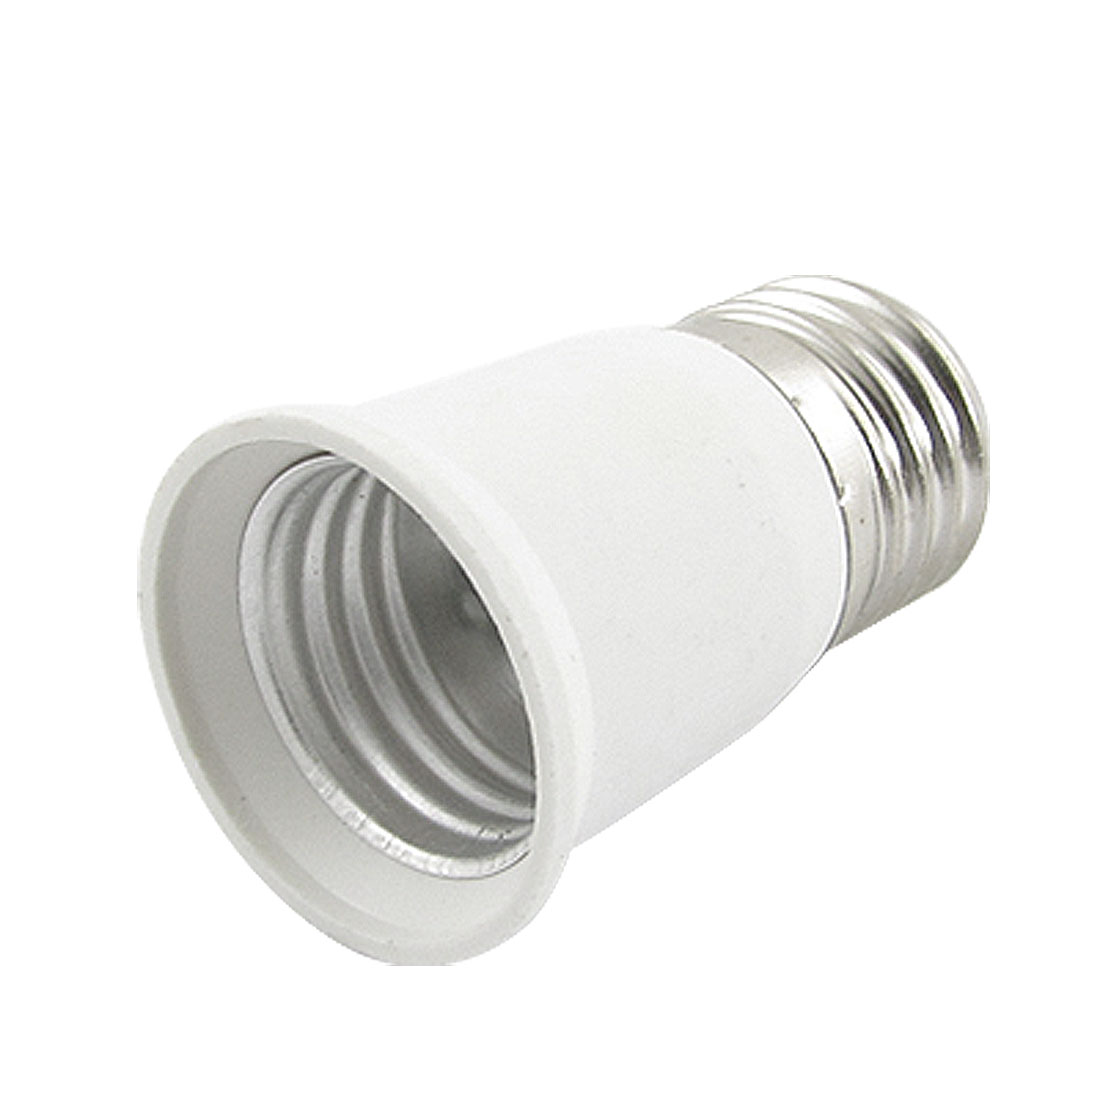 E27 to E27 Bulb Holder Silver Tone White Adapter Extender